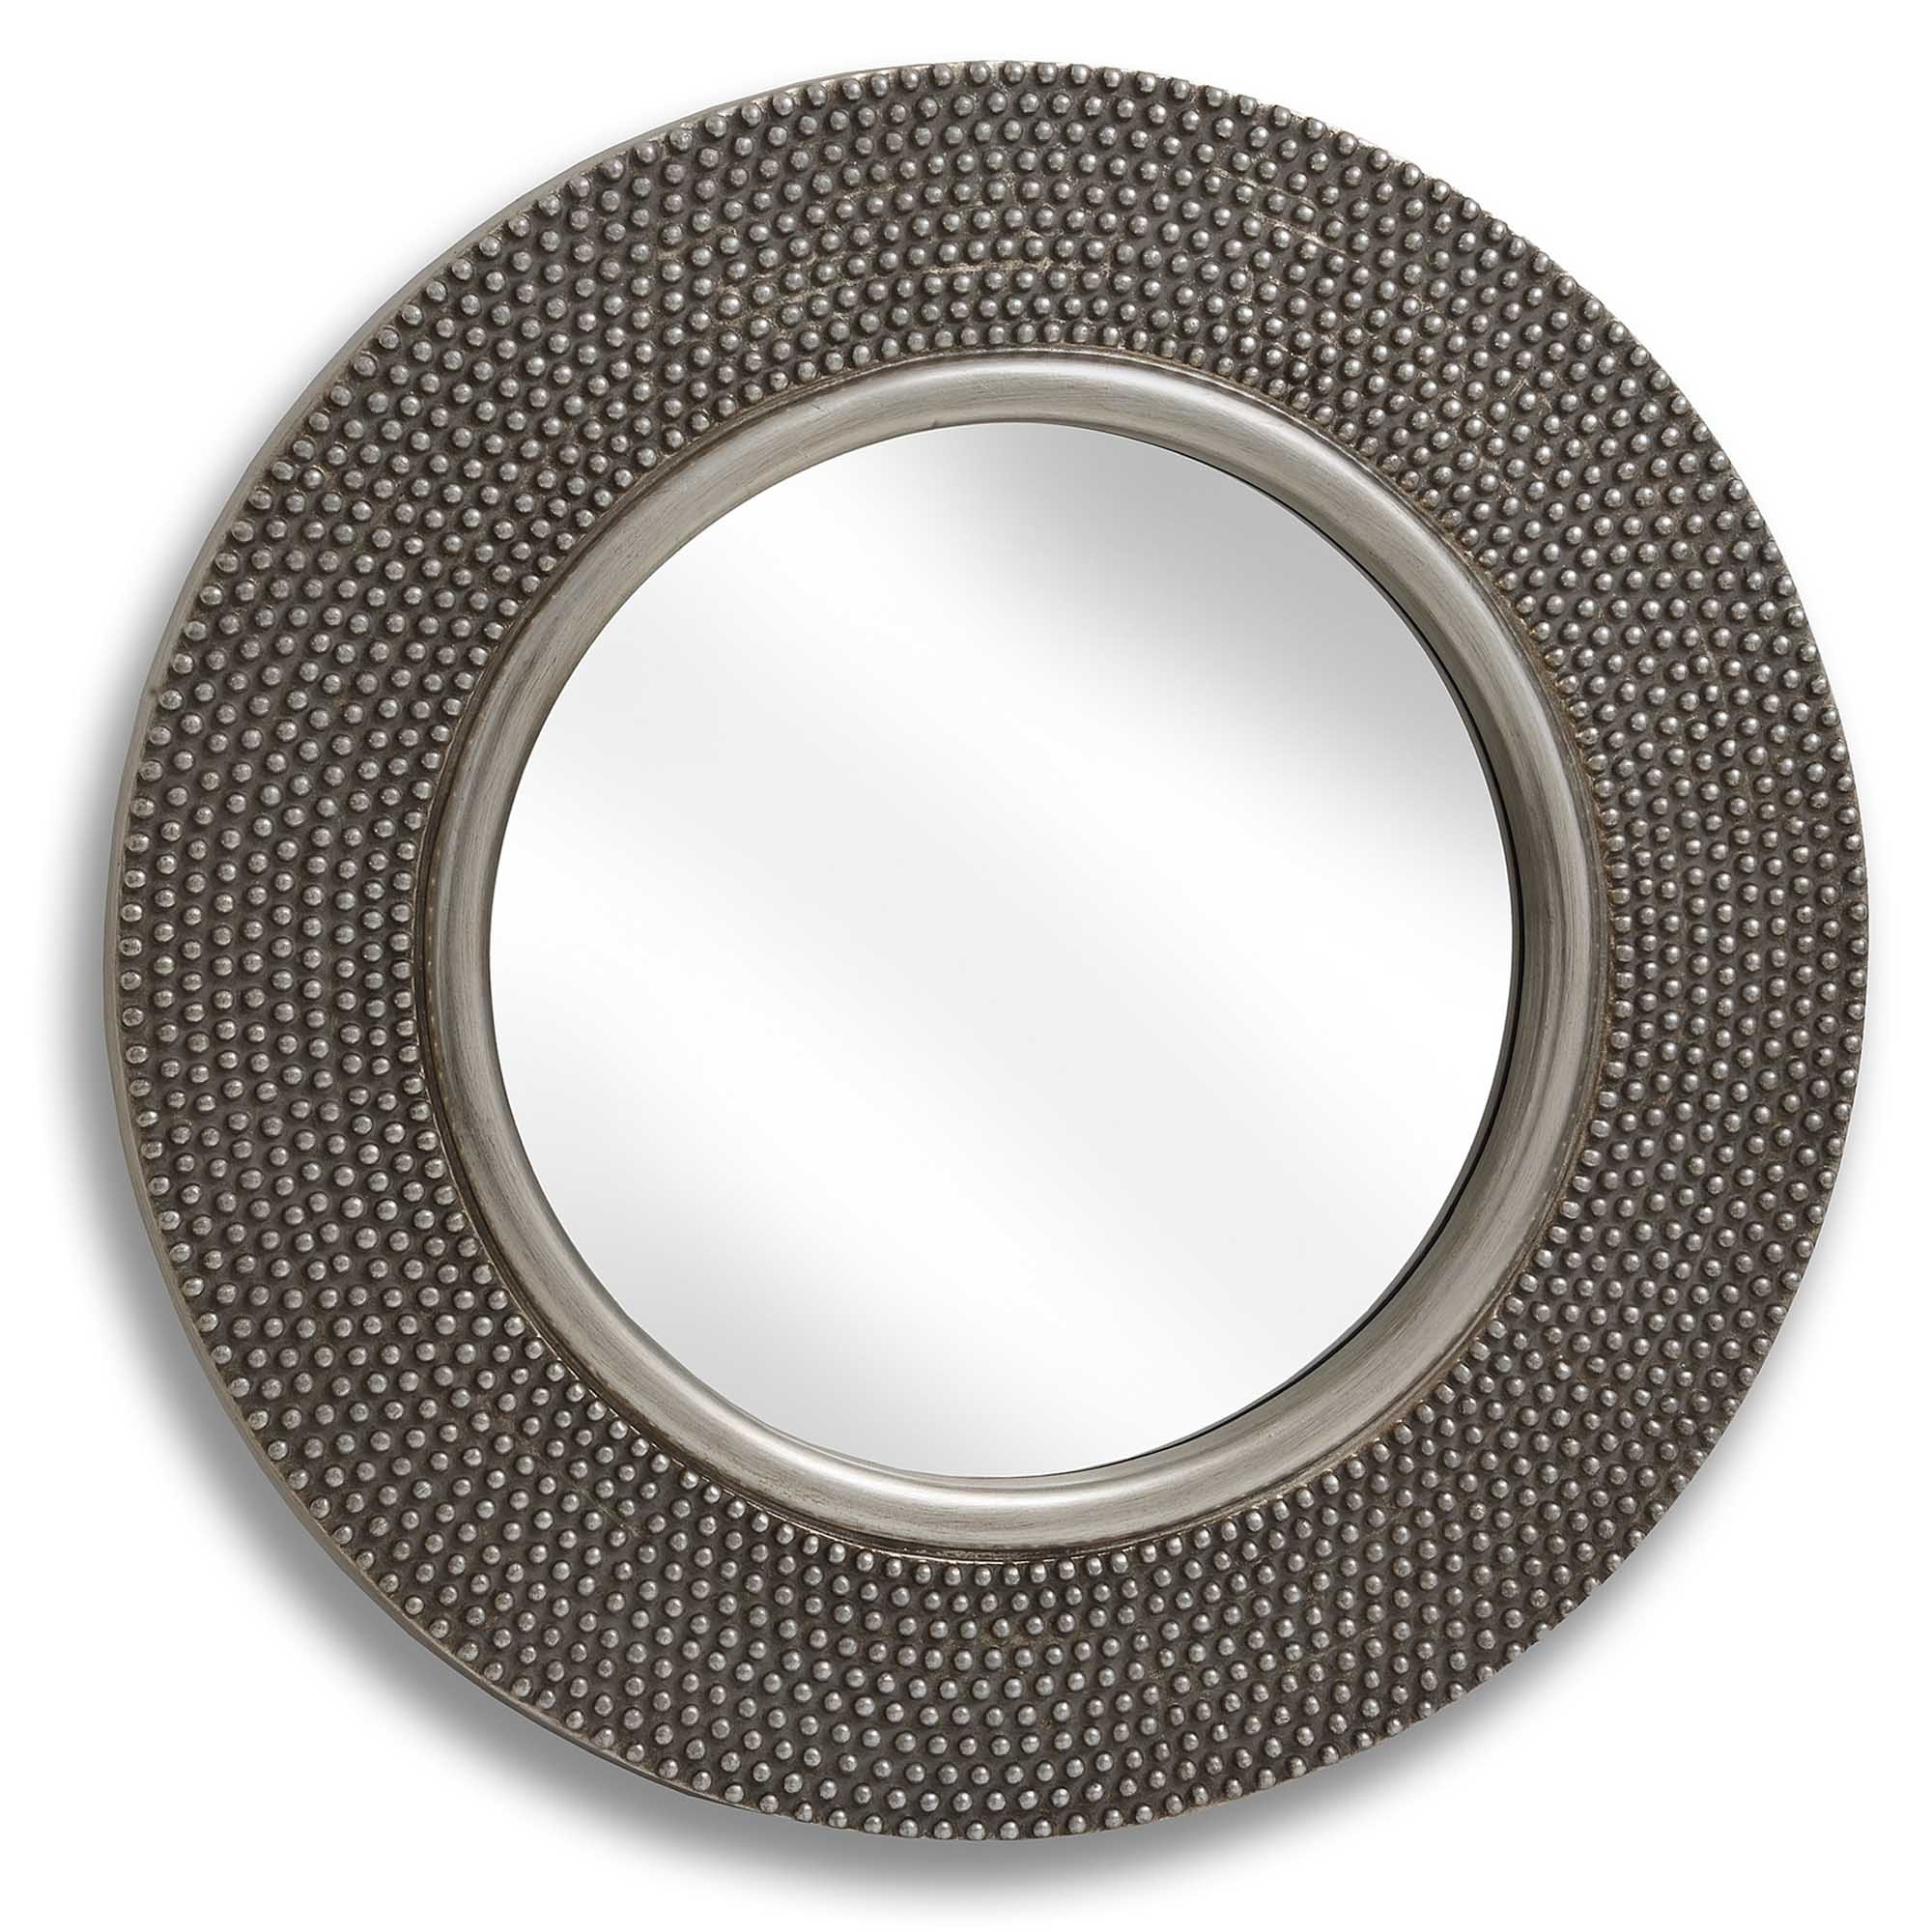 2020 Large Round Beaded Wall Mirror Within Large Circular Wall Mirrors (View 9 of 20)